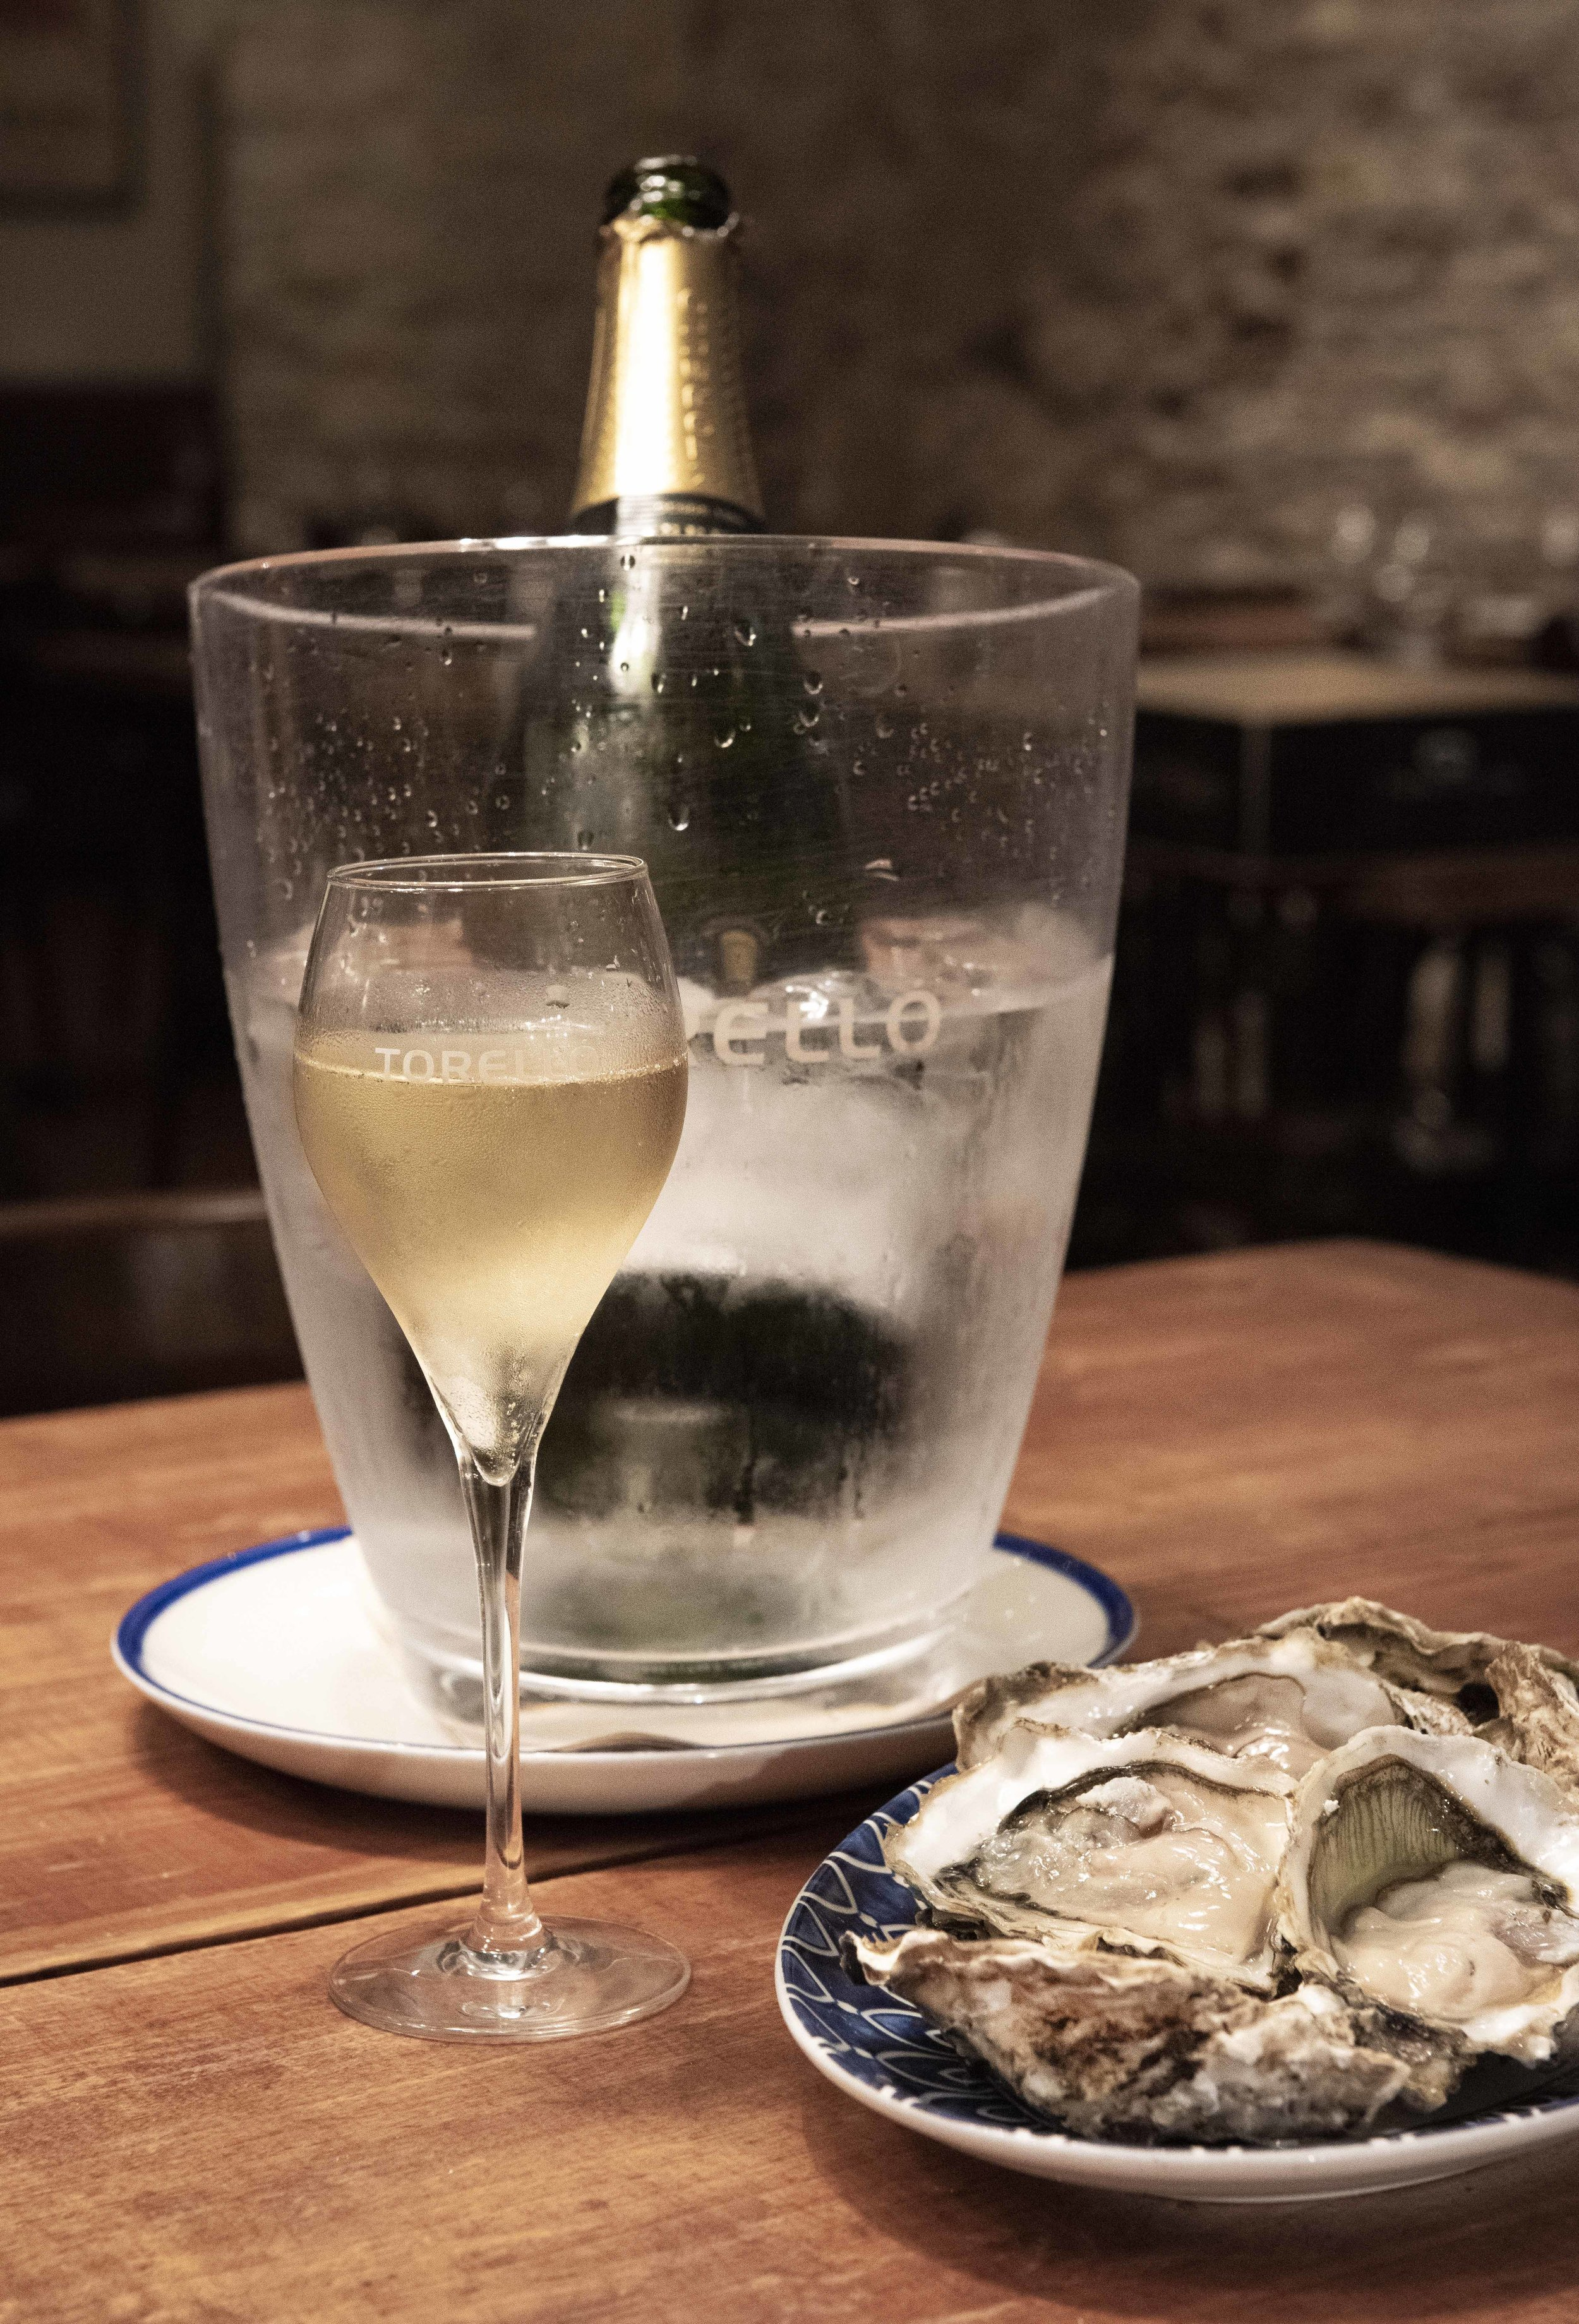 Oysters and Corpinnat from Torelló. Photo © Barcelona Food Experience.